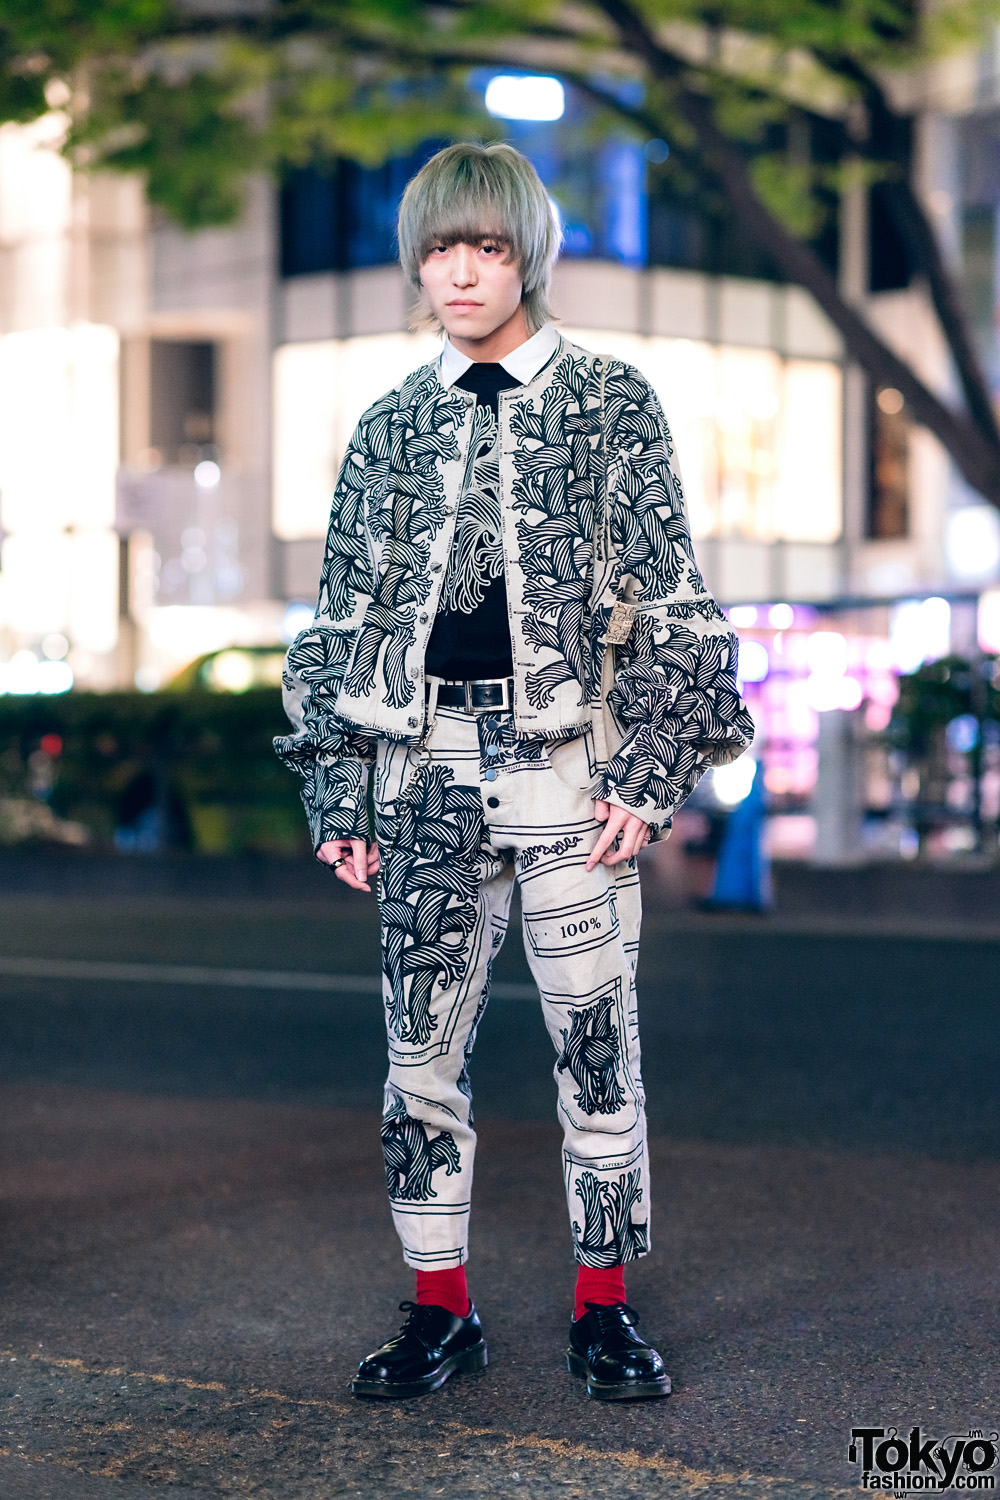 68a05fe565 Christopher Nemeth Rope Print Streetwear in Harajuku w/ Collarless Jacket,  Button-Fly Pants, Lace-Up Shoes & Tote Bag